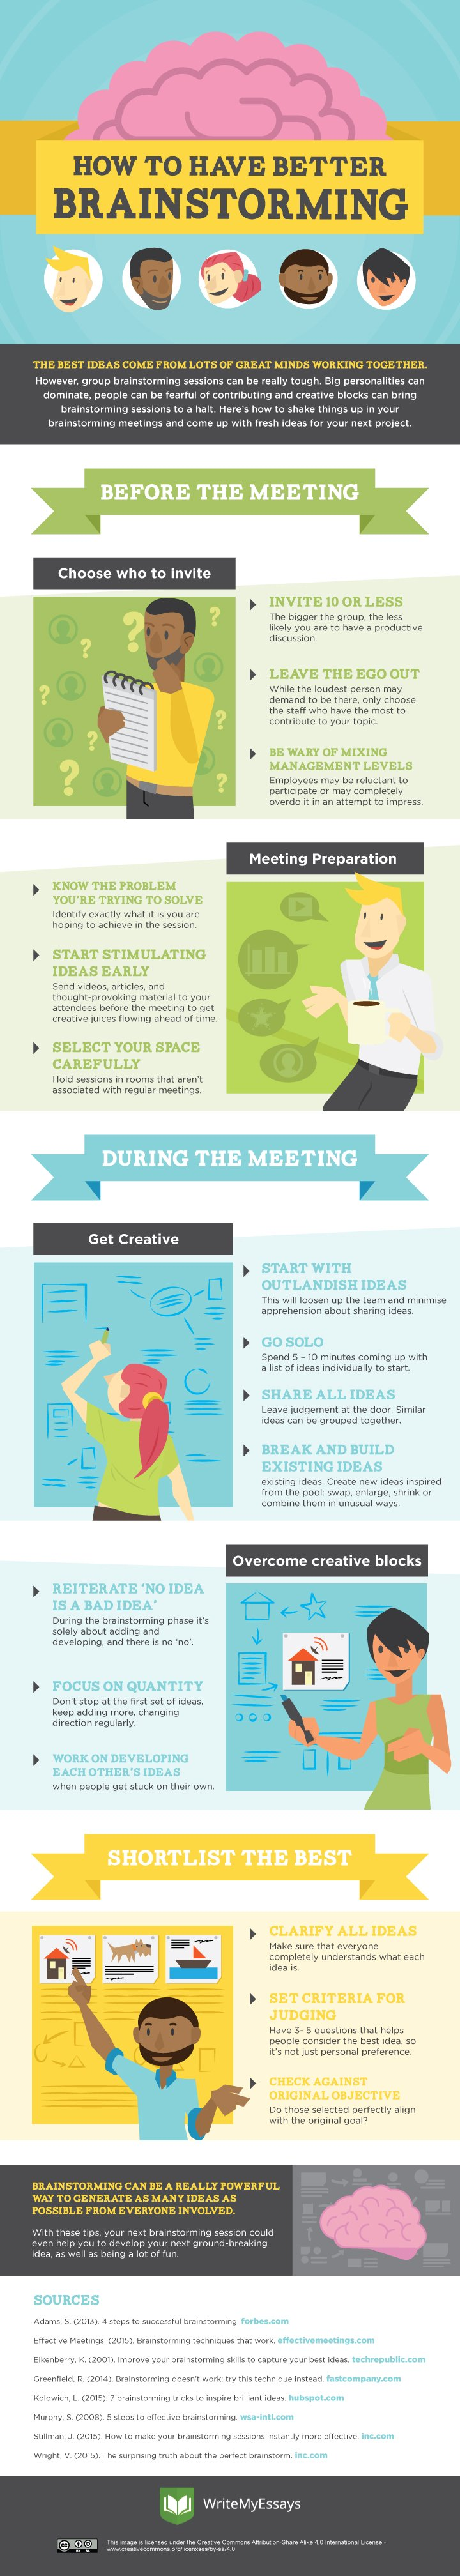 steps brainstorming Brainstorming generates a large number of creative ideas in a short period of time.